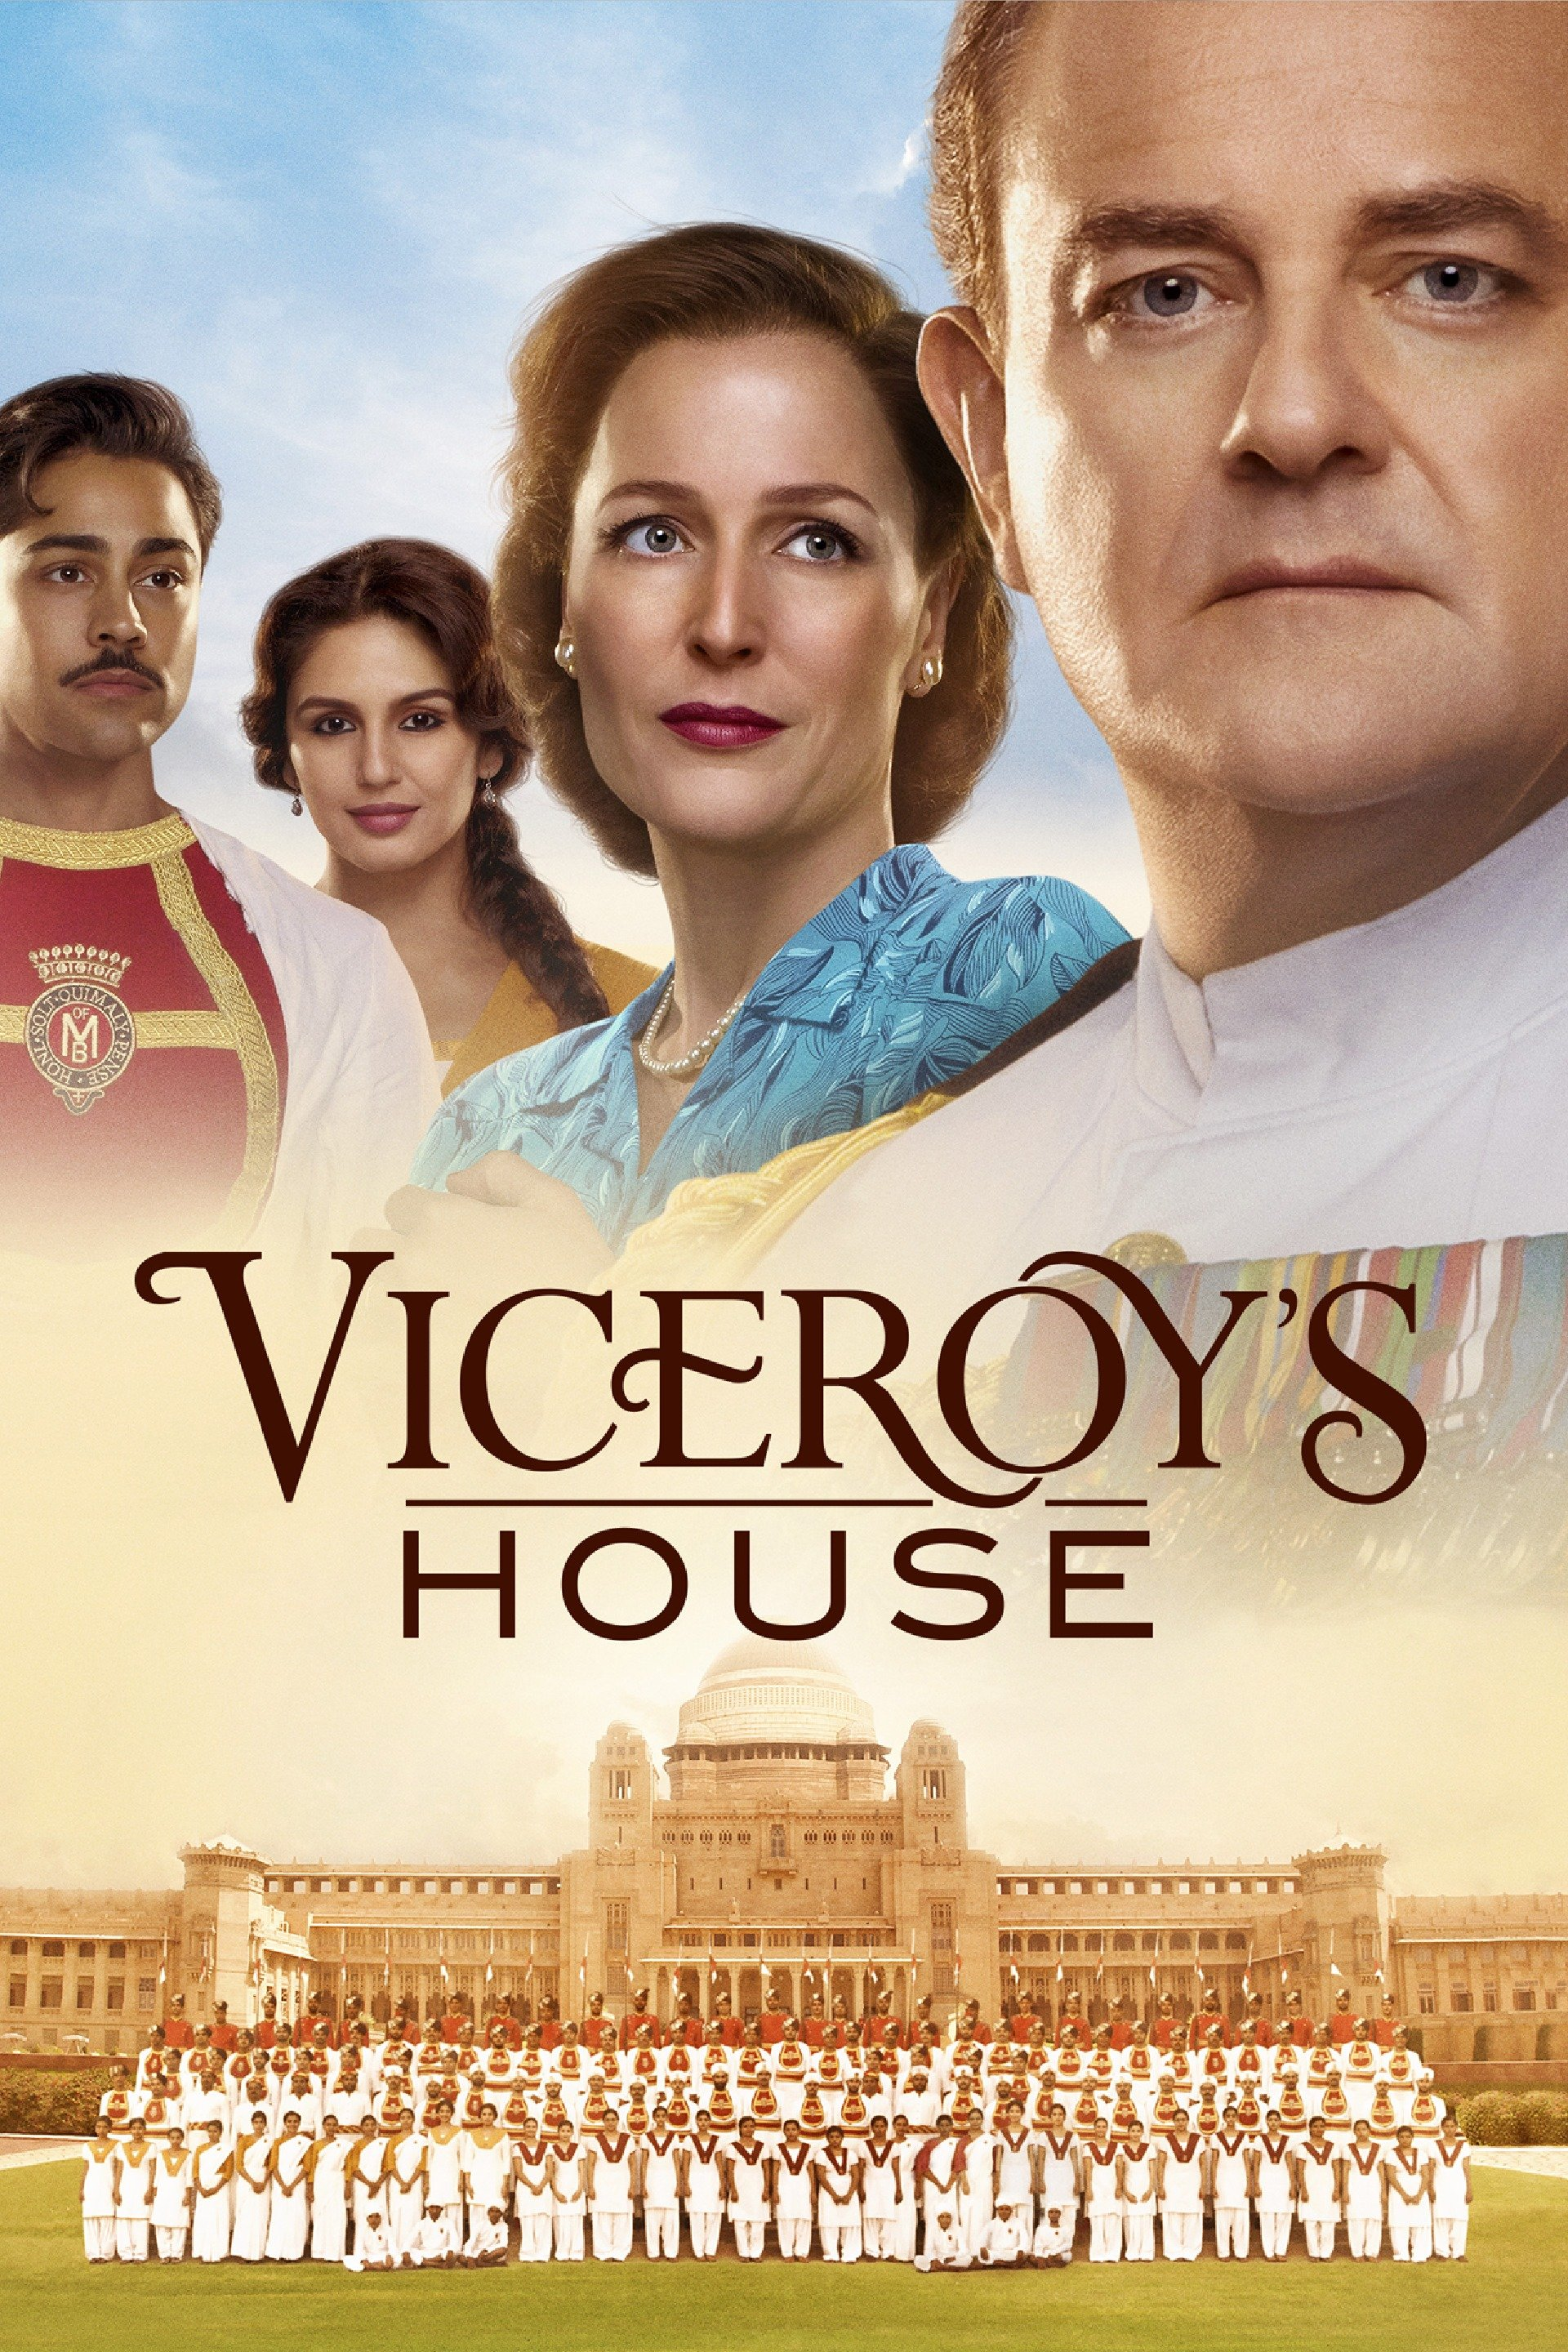 Viceroy's House